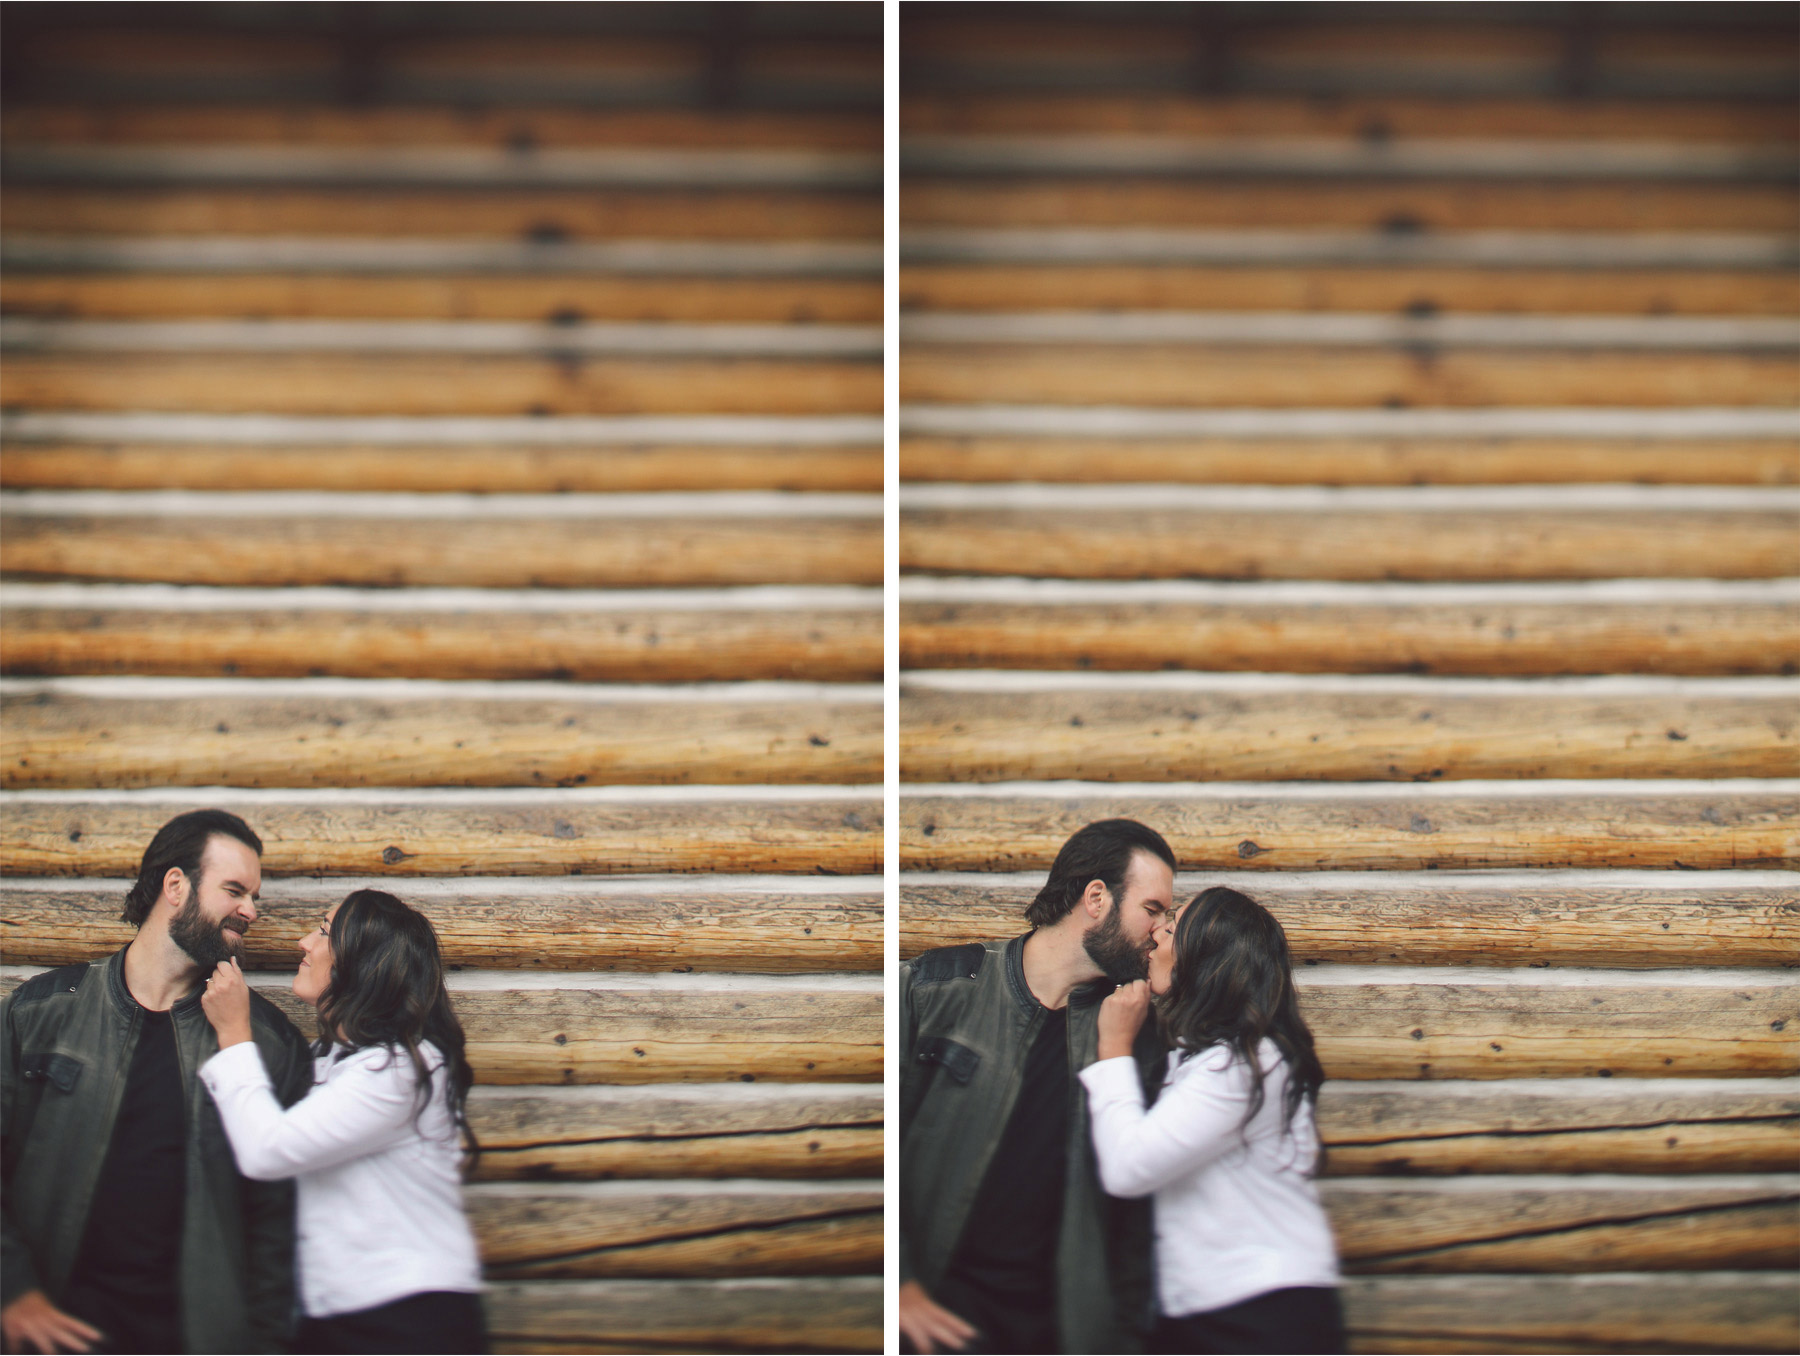 02-Calgary-Canada-Engagement-Photography-by-Vick-Photography-Mountains-Lizz-and-Brady.jpg